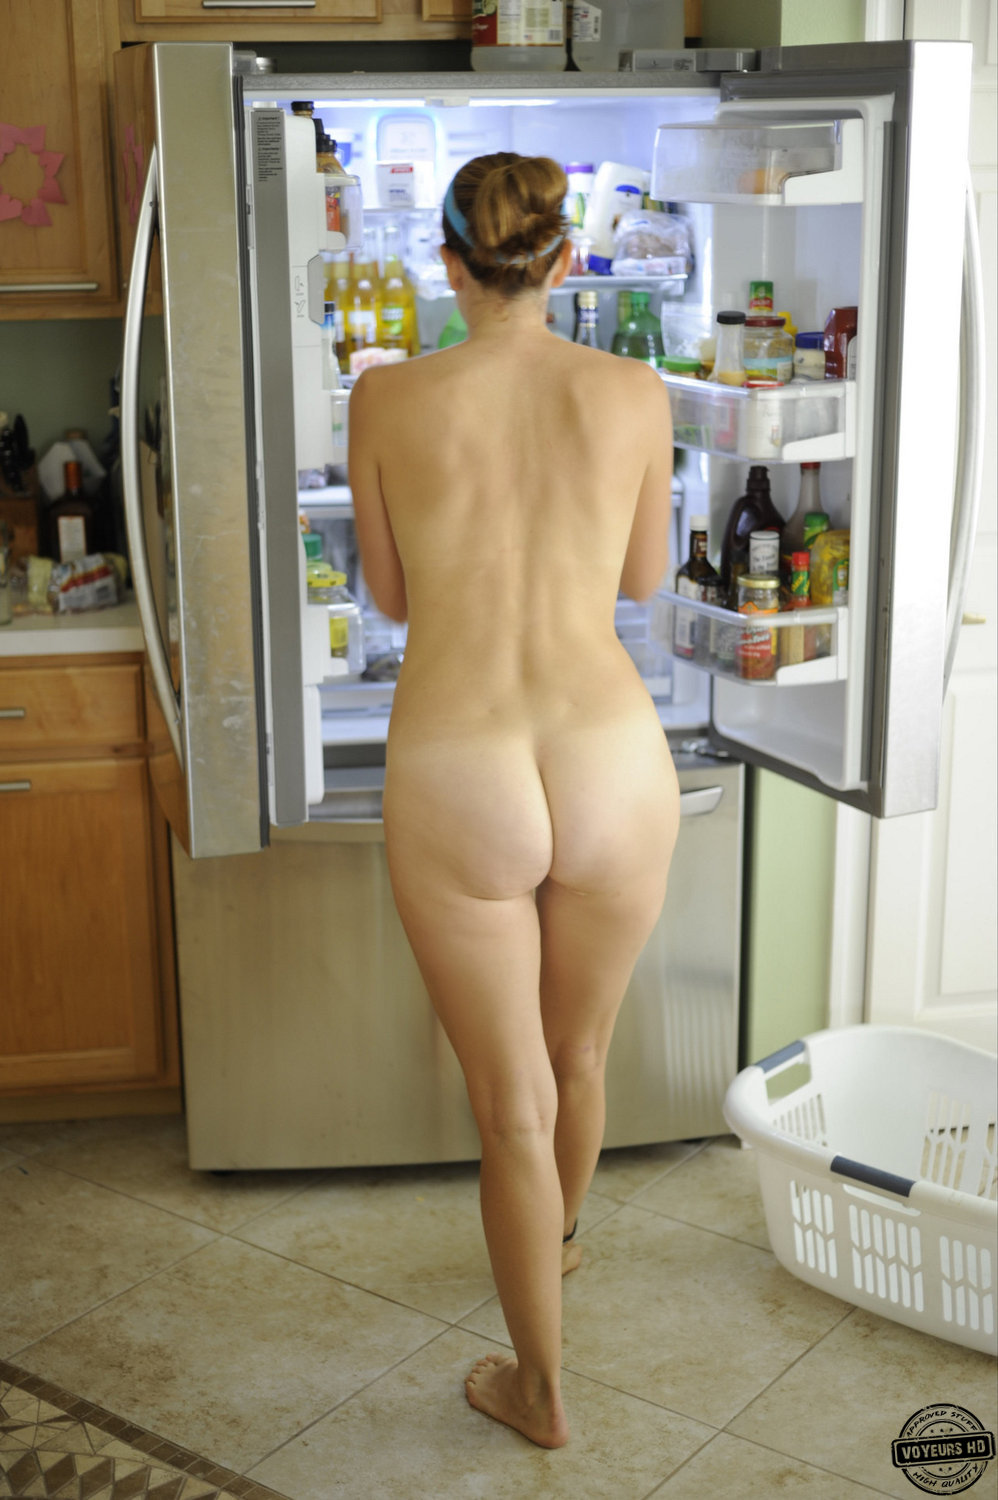 women-walking-around-the-house-naked